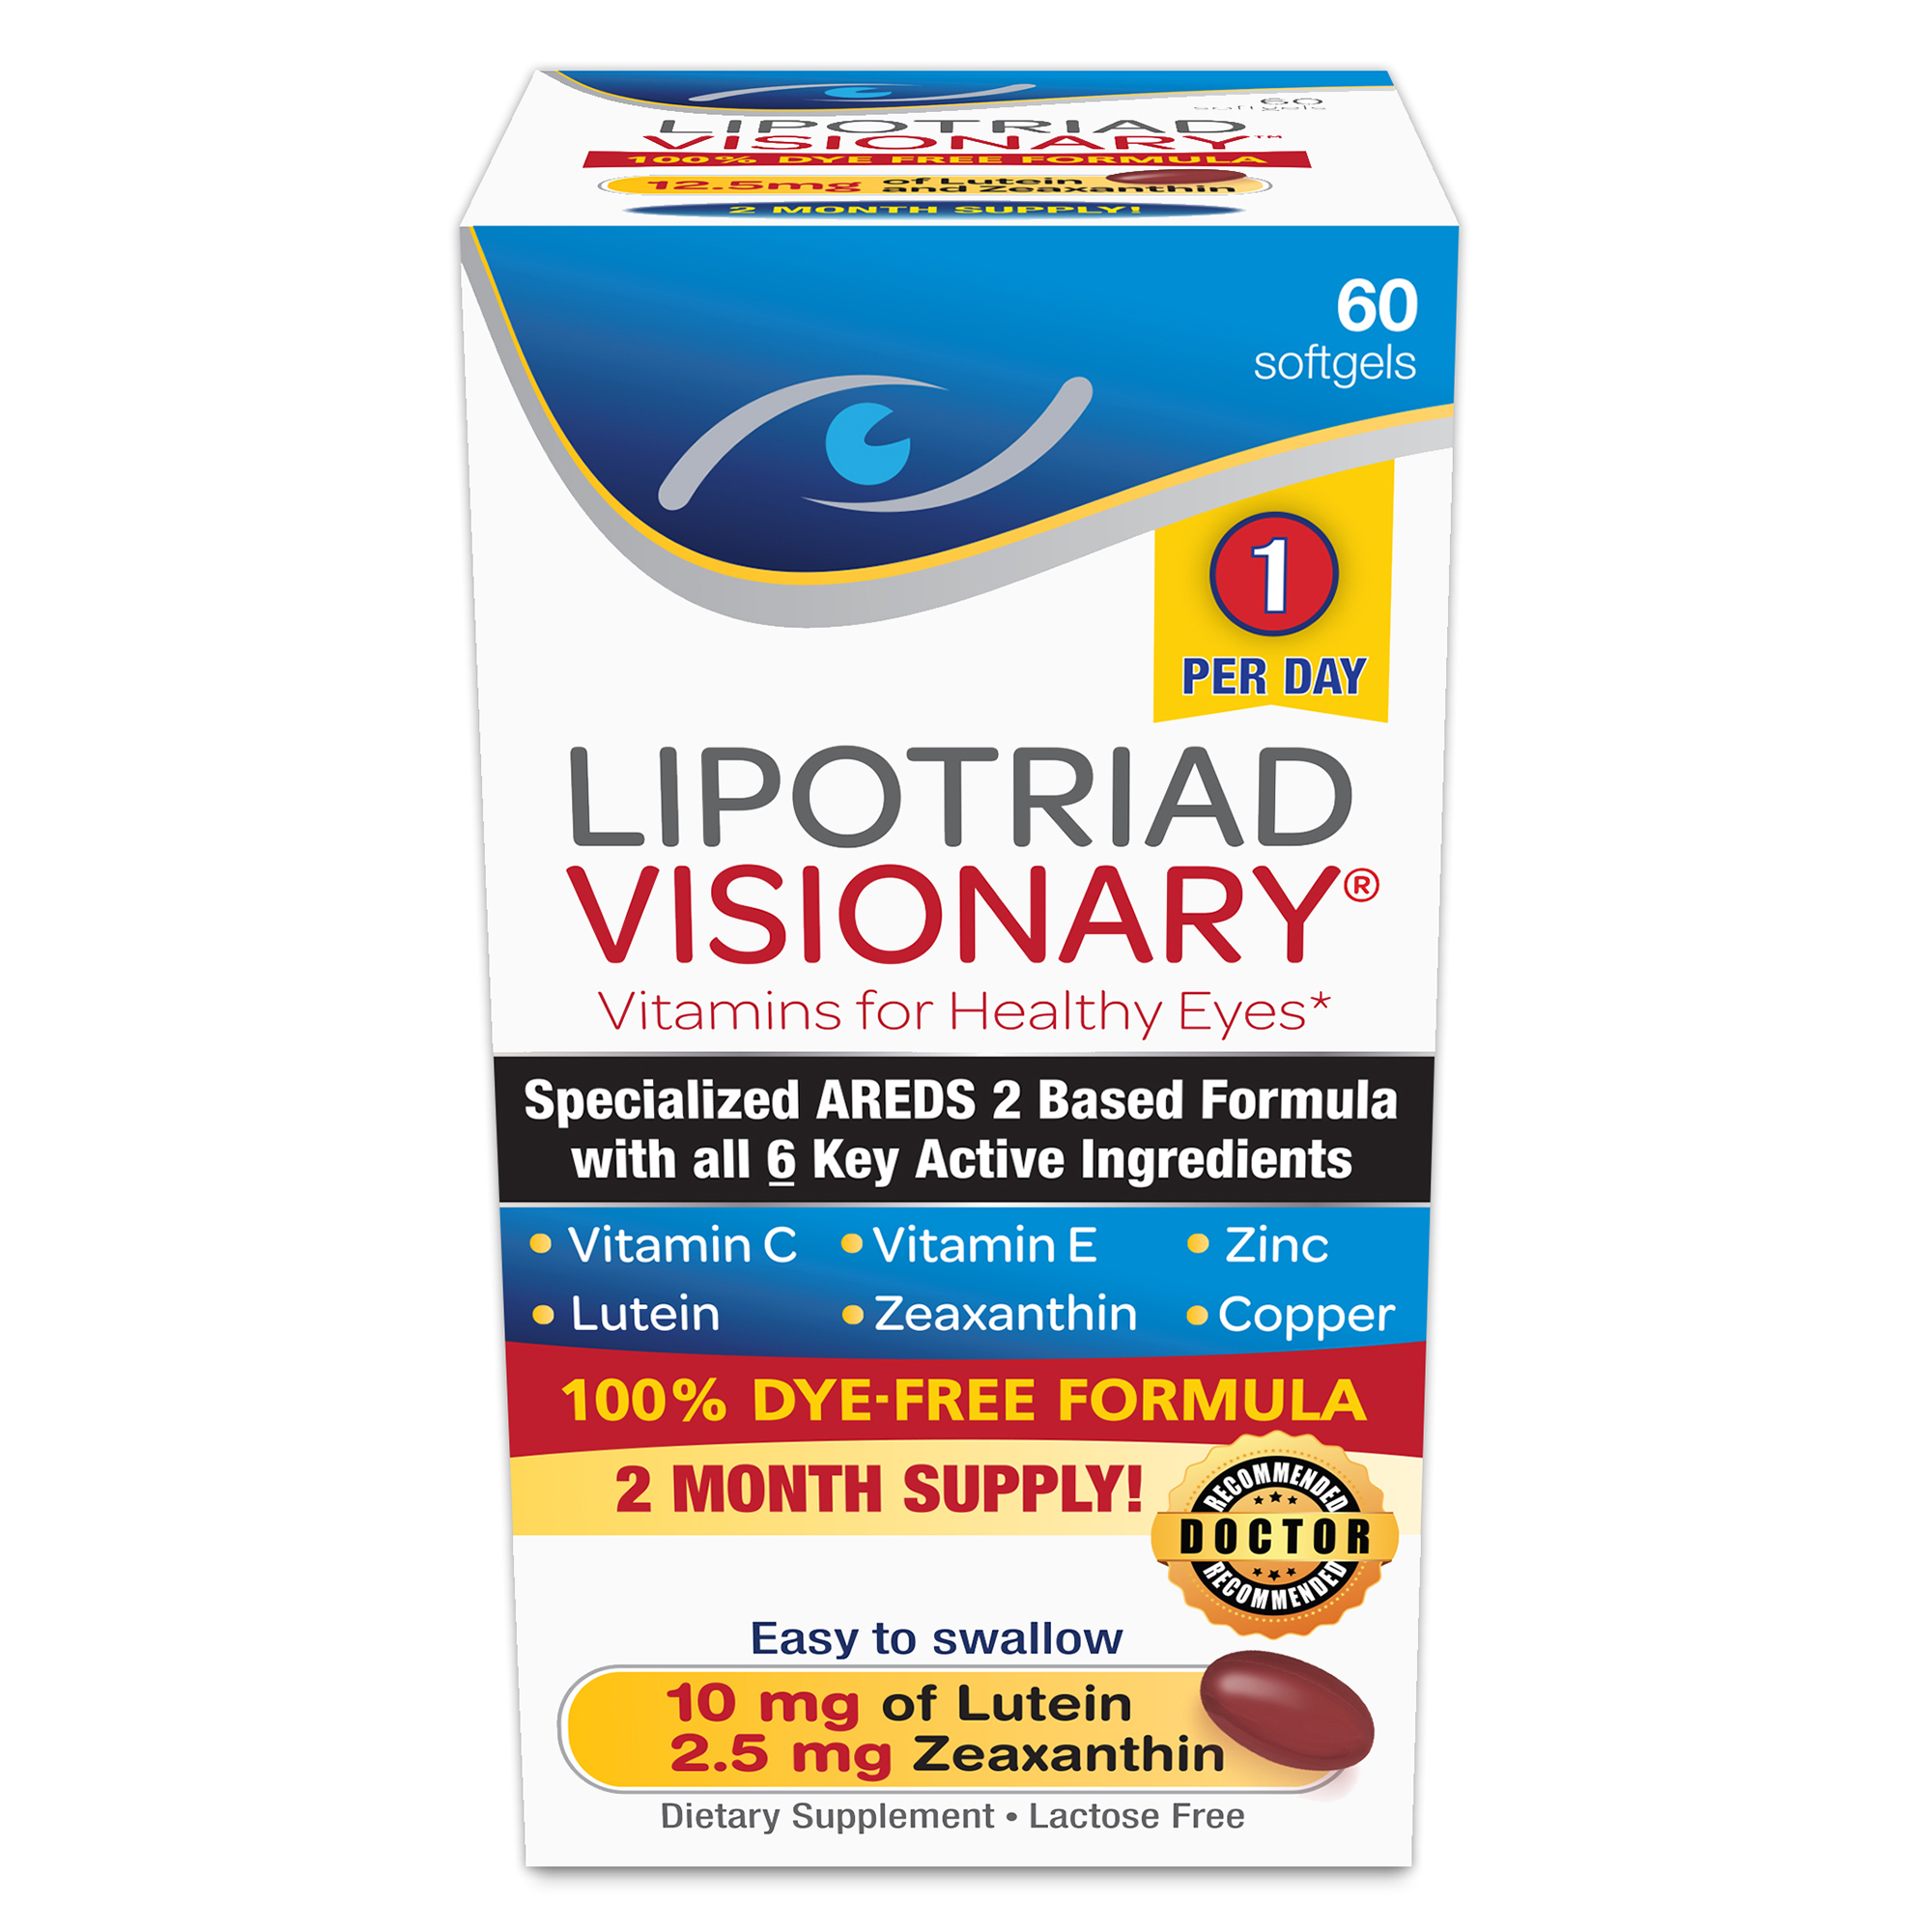 Lipotriad Visionary AREDS 2 Based Eye Vitamin and Mineral Supplement, 60 Ct